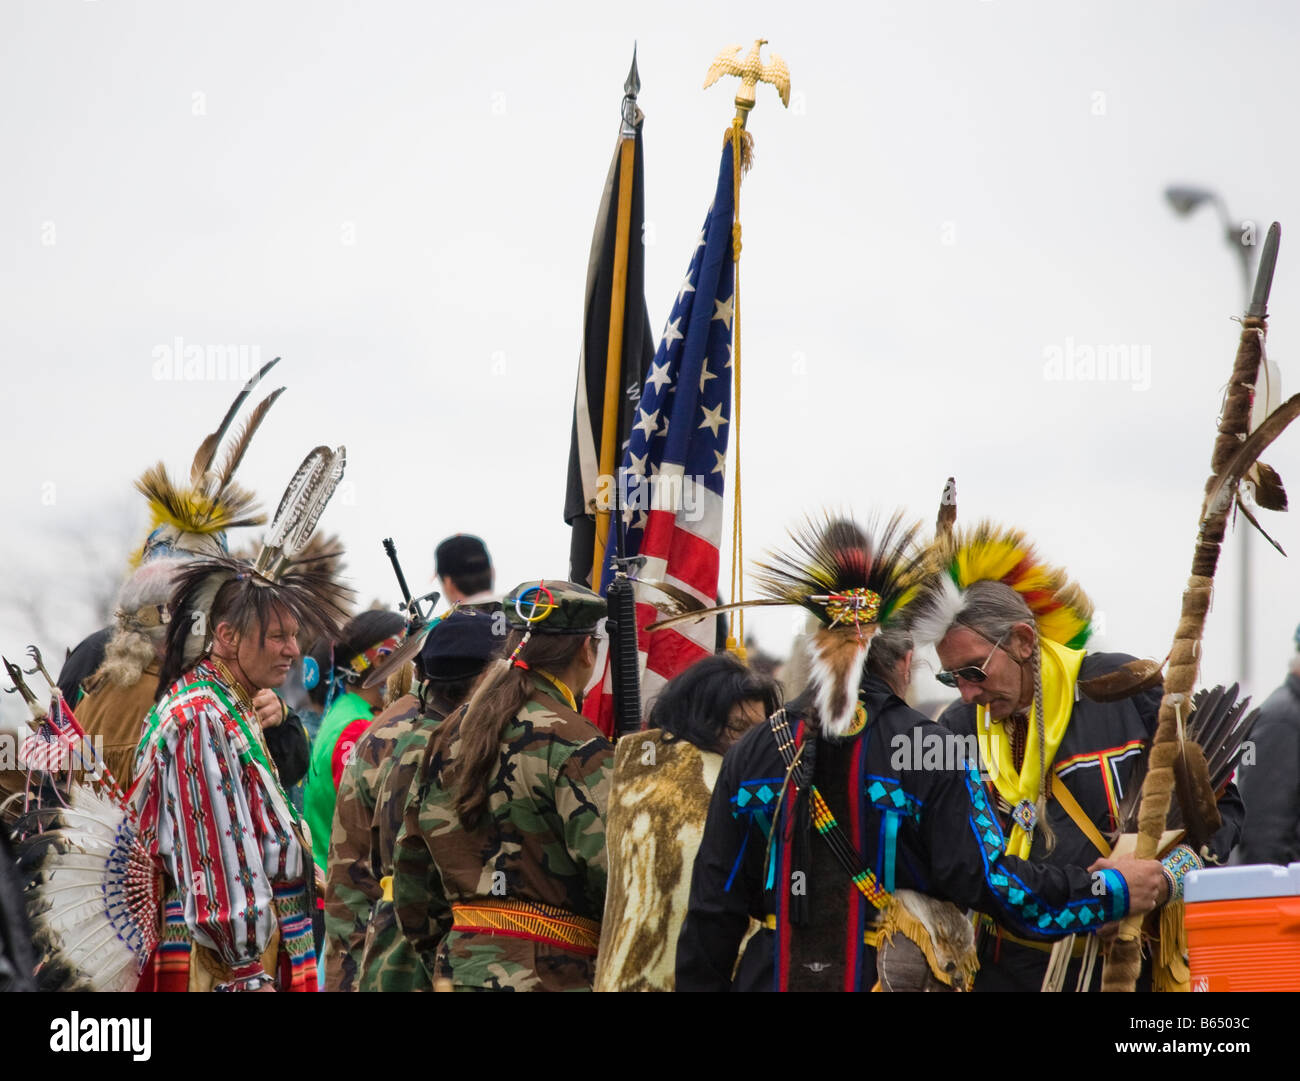 Native Americans at the Healing Horse Spirit PowWow in Mt. Airy, Maryland carry an American flag POW-MIA flag. Stock Photo